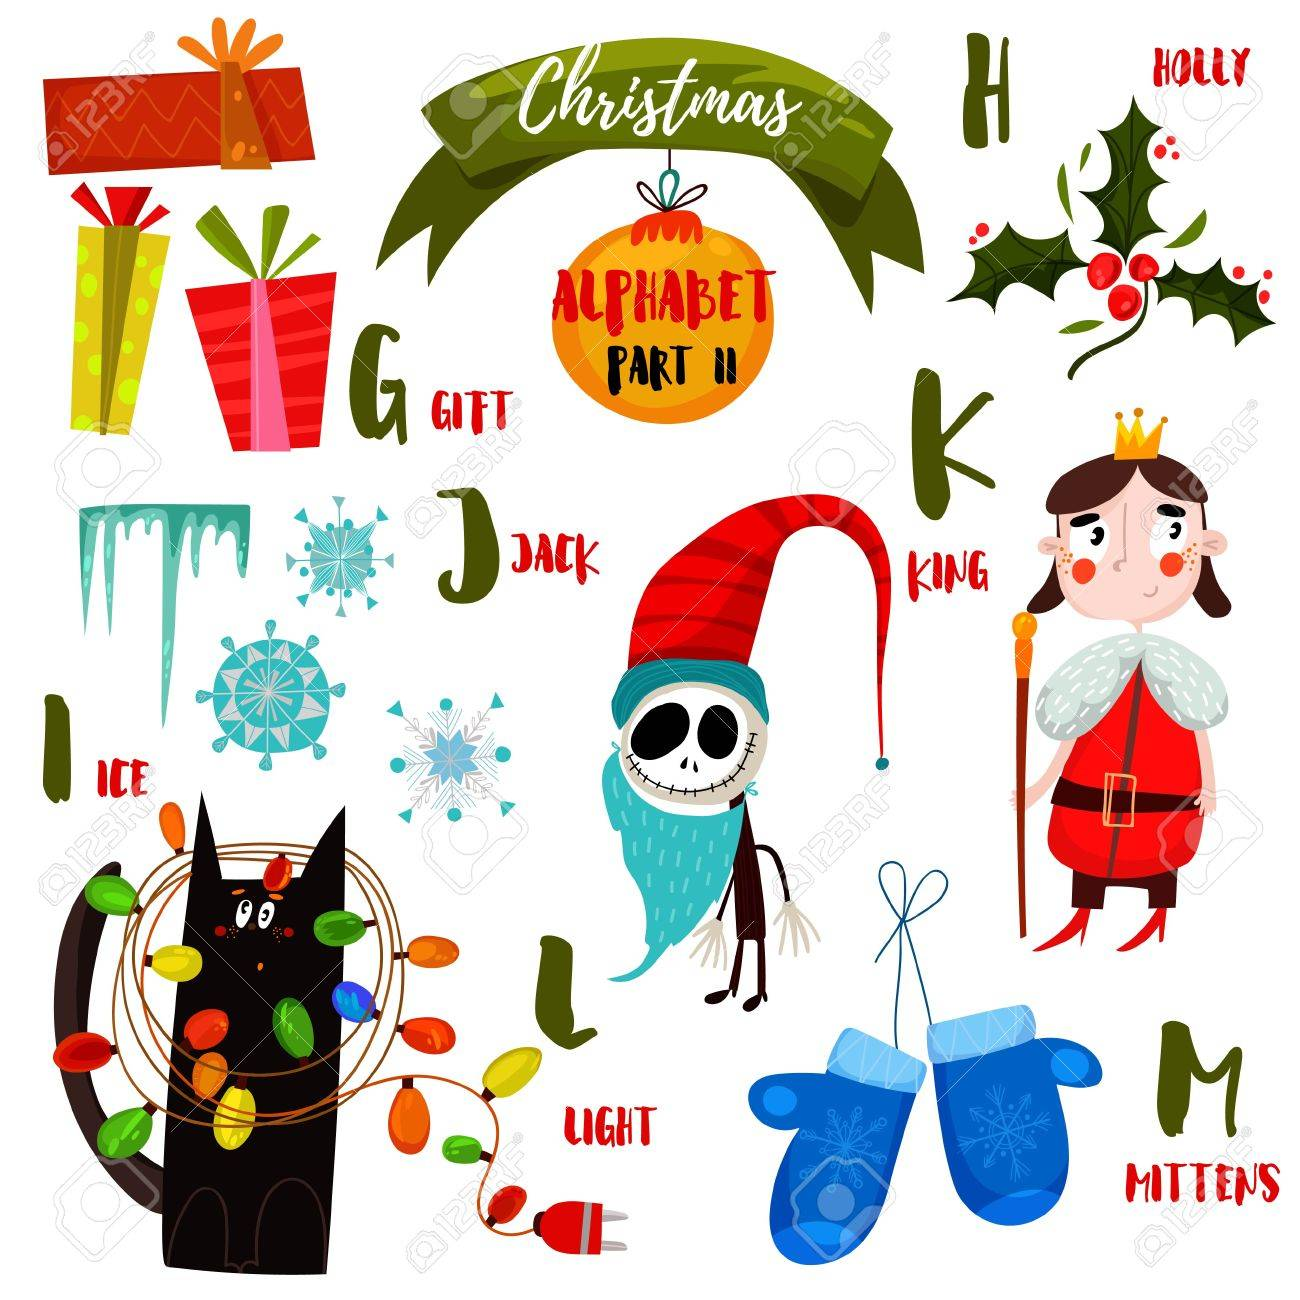 awesome christmas alphabet in vector part ii a lot of holiday